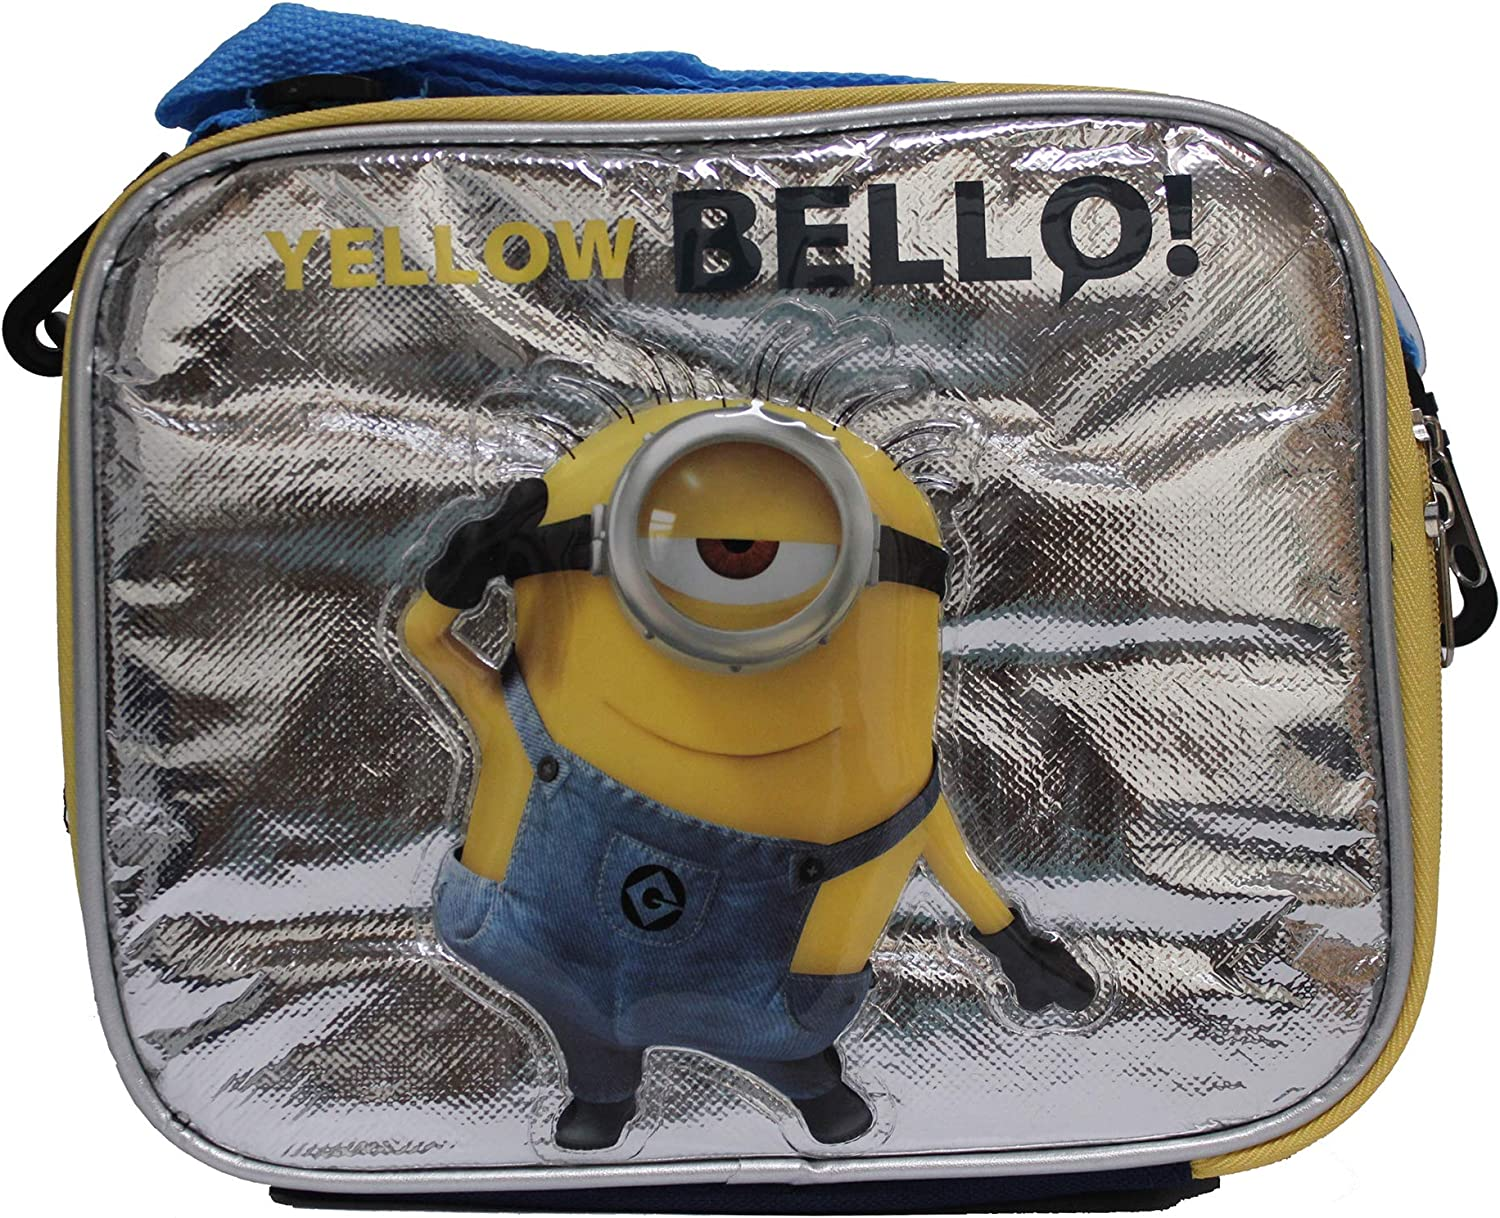 Despicale Me 2 Insulated Lunch Box-Yellow Bello